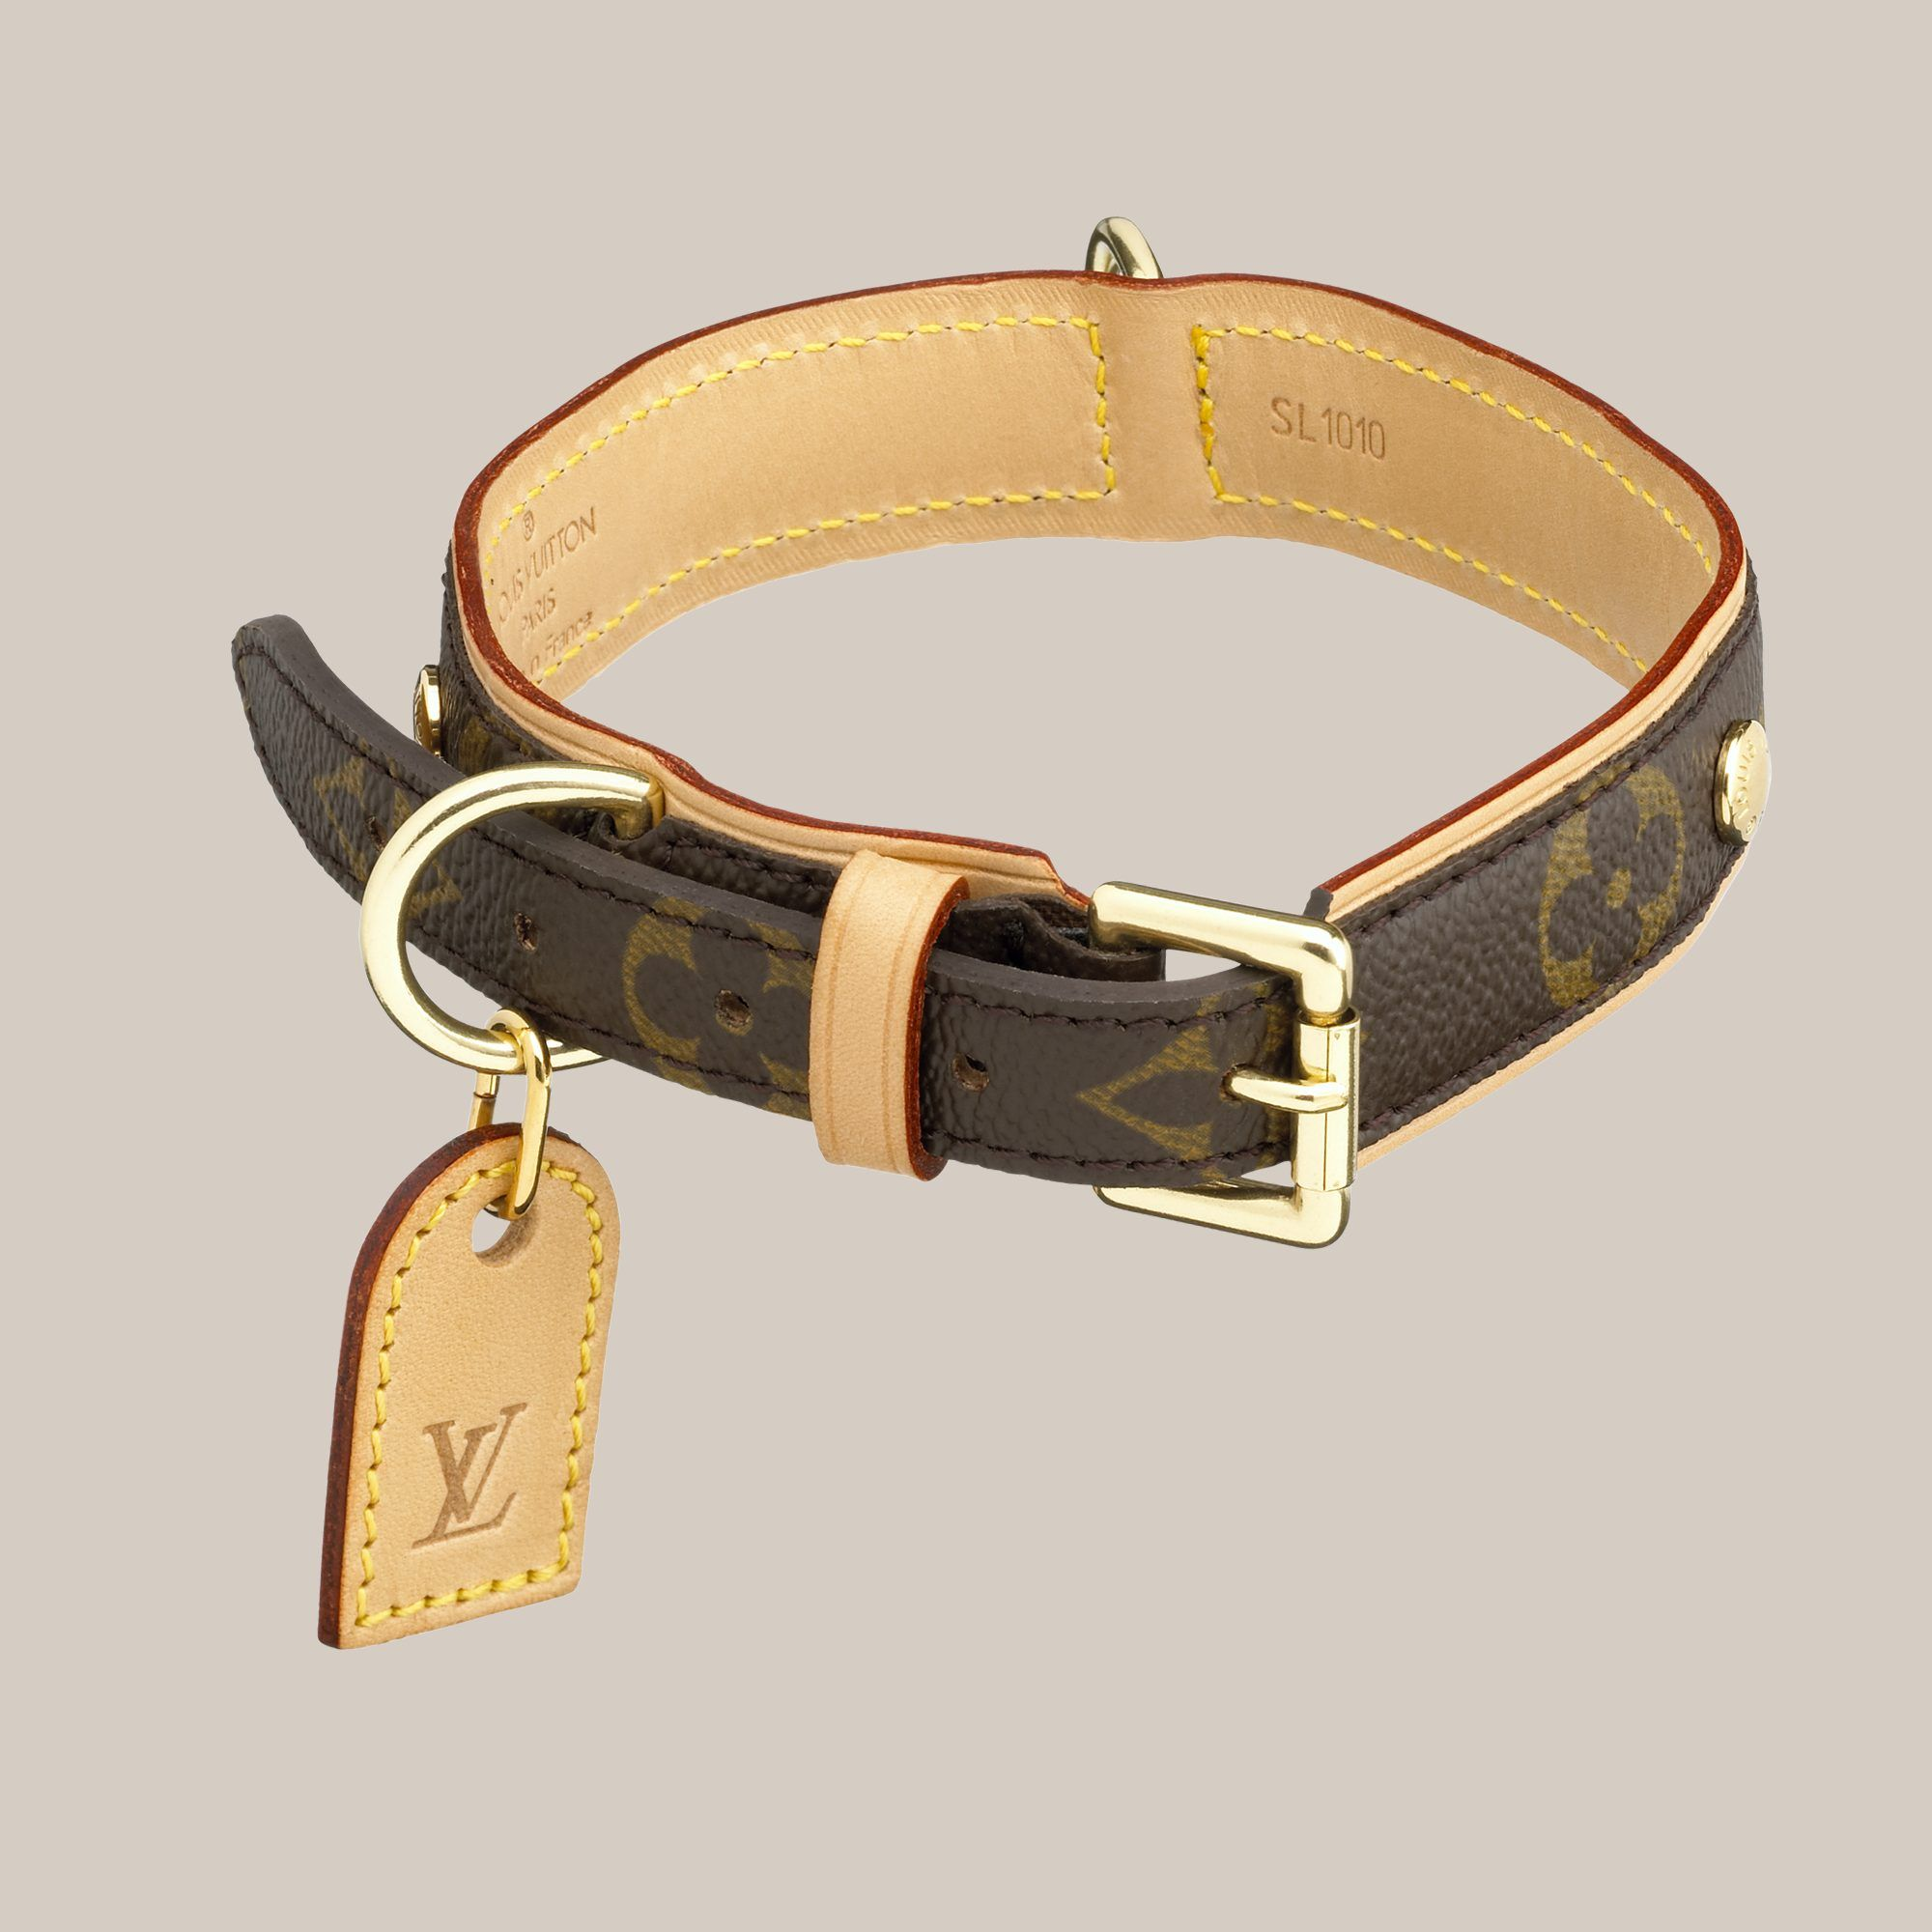 eca915802d16 Baxter Dog Collar MM - Louis Vuitton - LOUISVUITTON.COM  345 Size MM ...